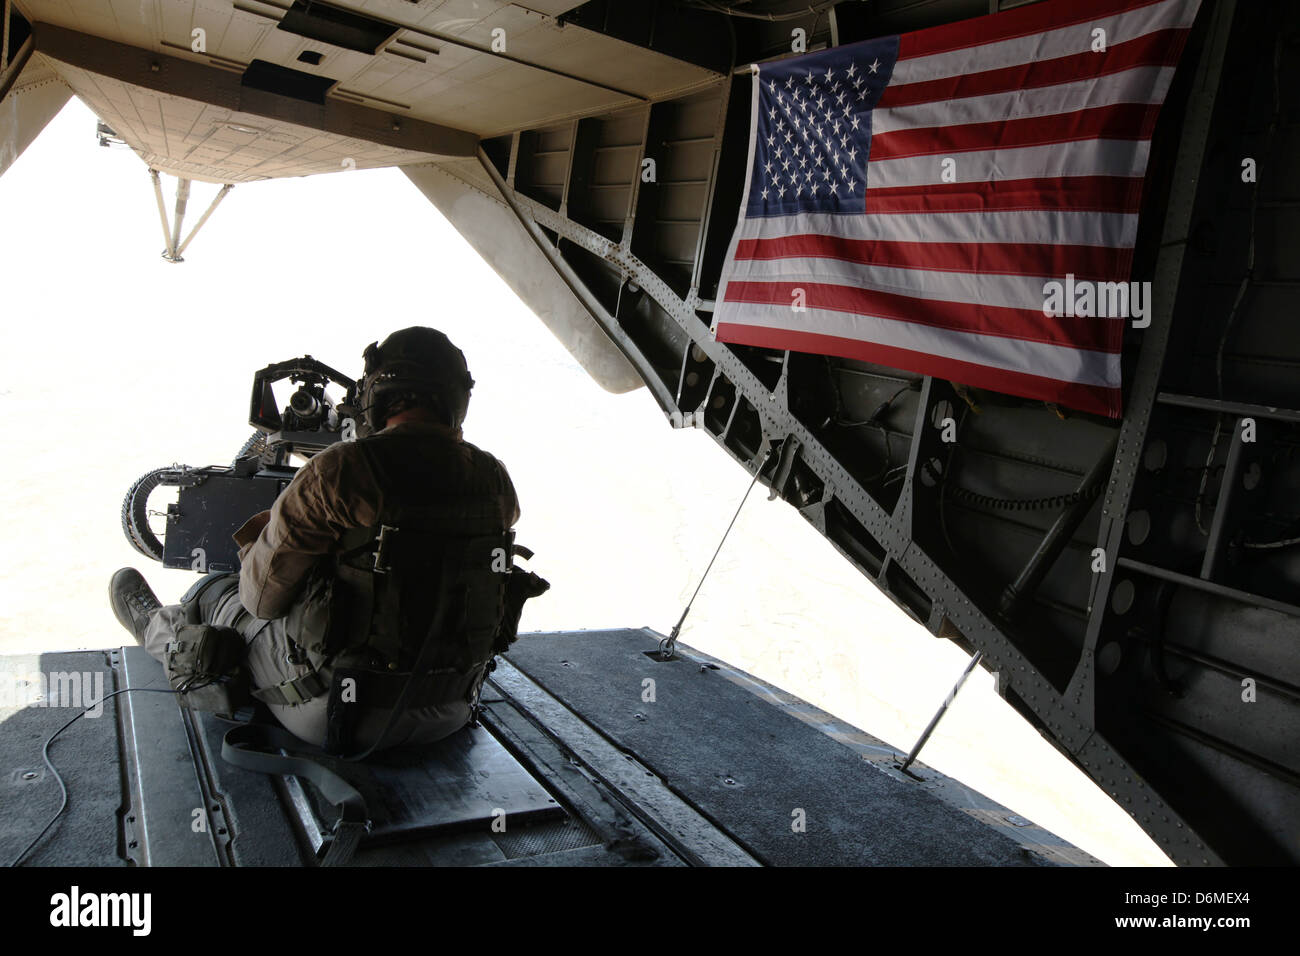 A US Marine door gunner provides security from a CH-53E Super Stallion helicopter during operations April 10, 2013 - Stock Image